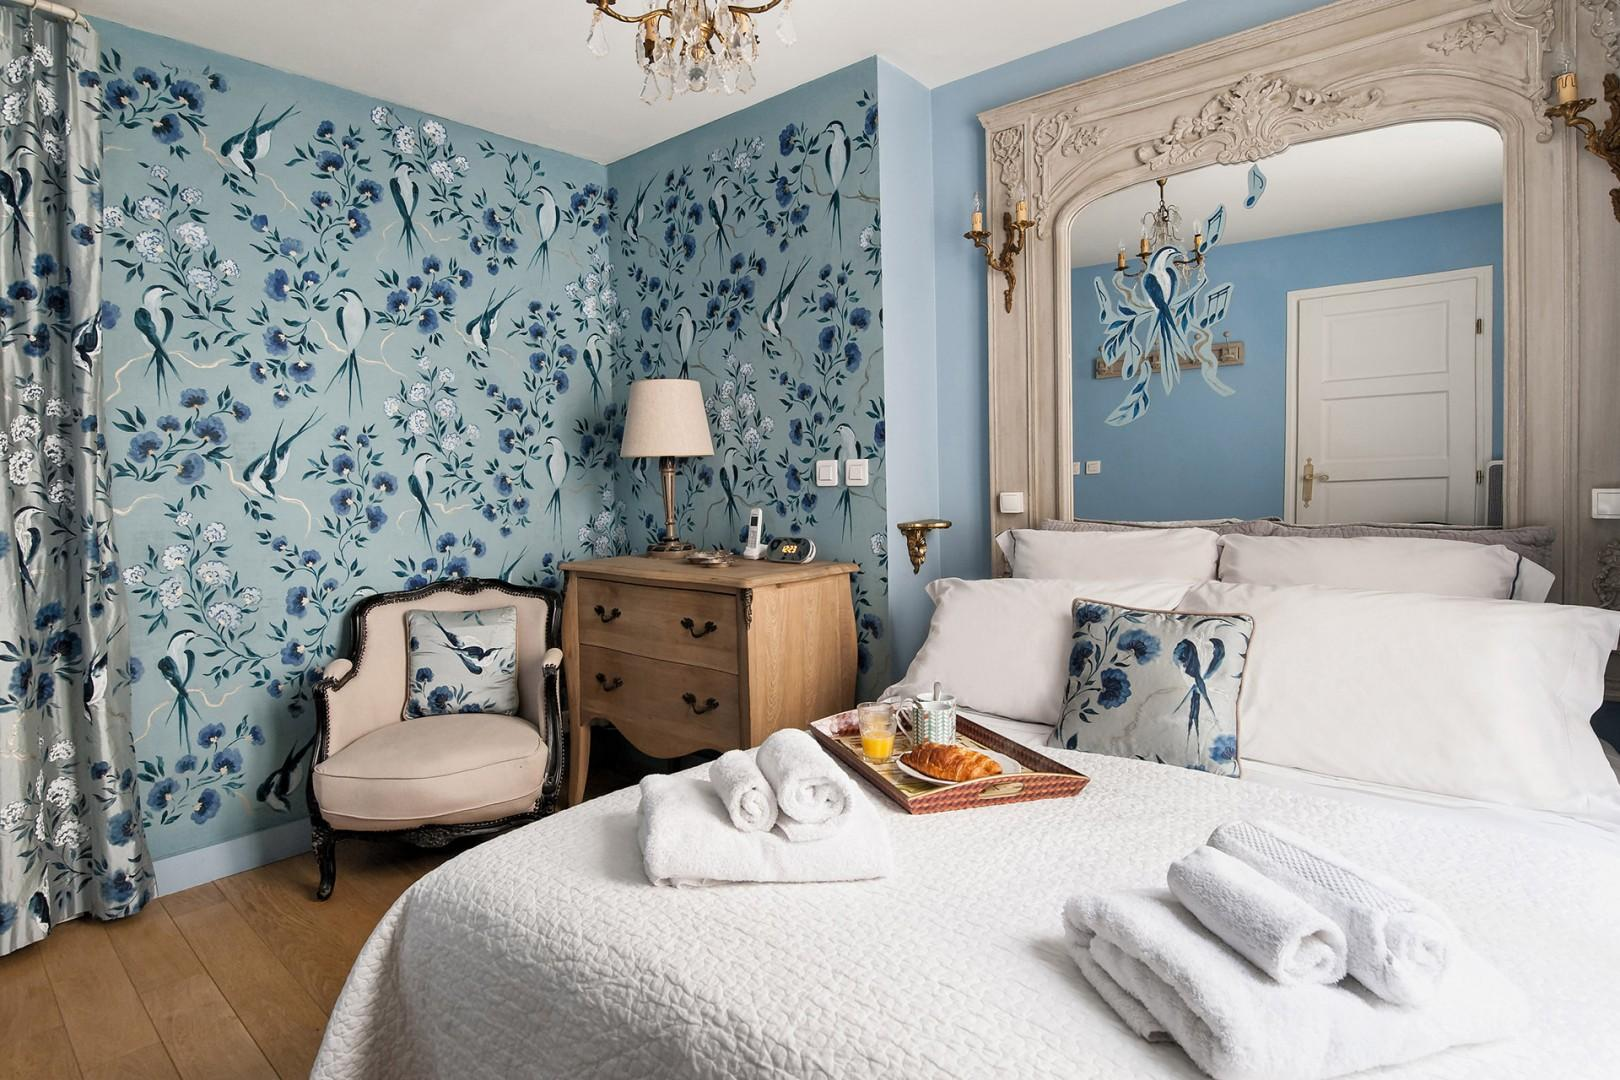 Feel at home in the gorgeous bedroom 2 with a comfortable bed and stylish décor.